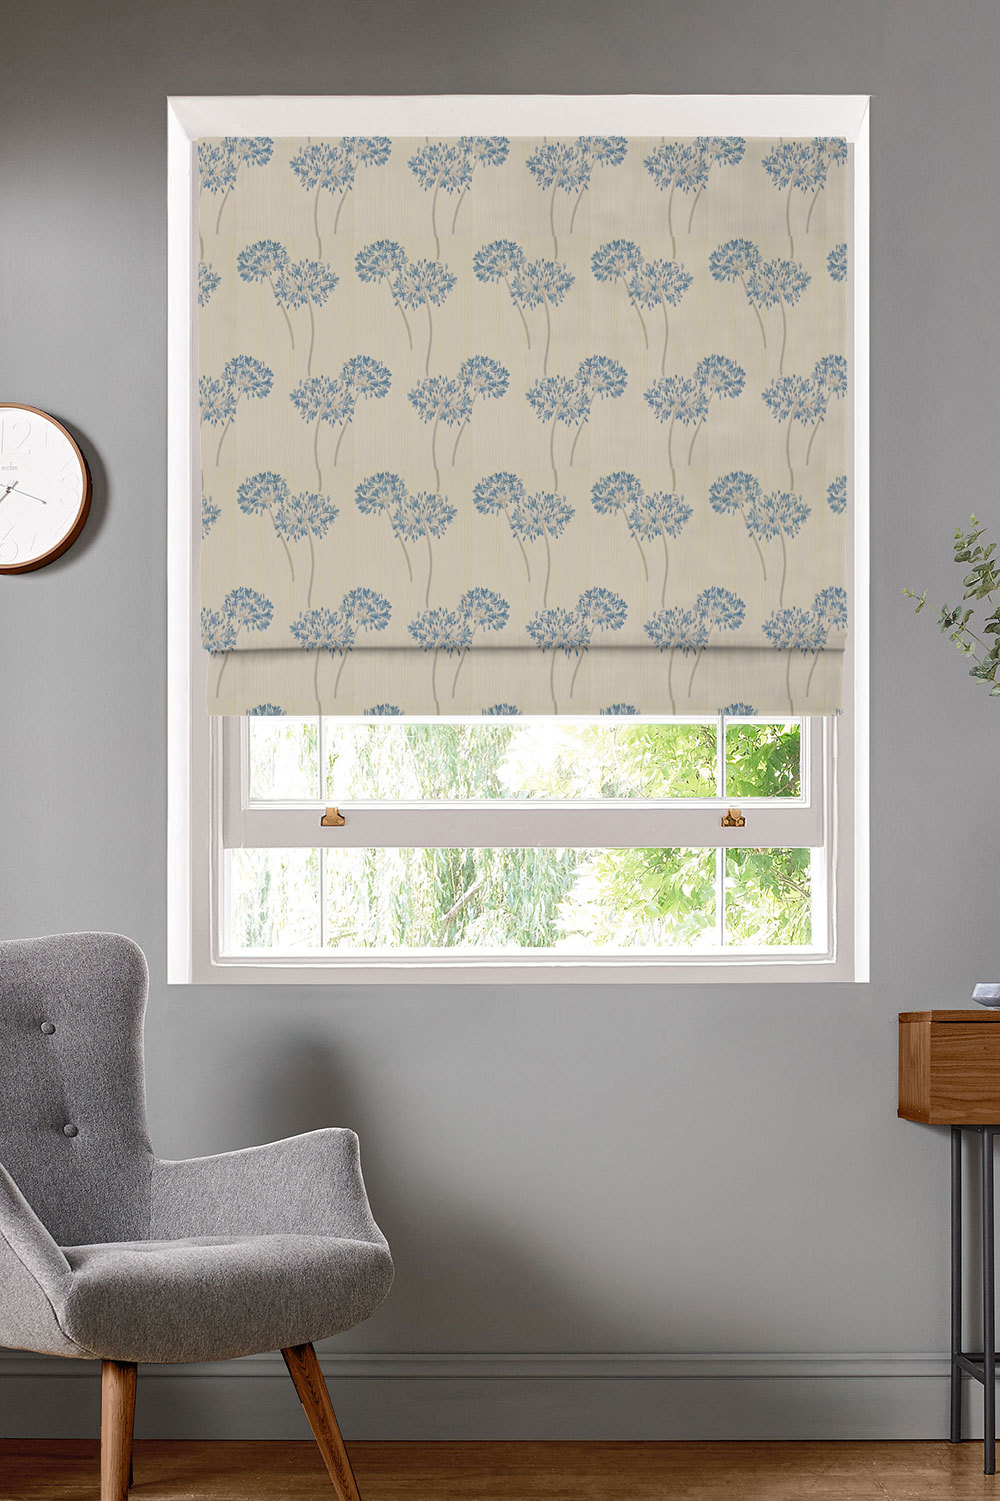 Hepburn Blueberry Roman Blinds